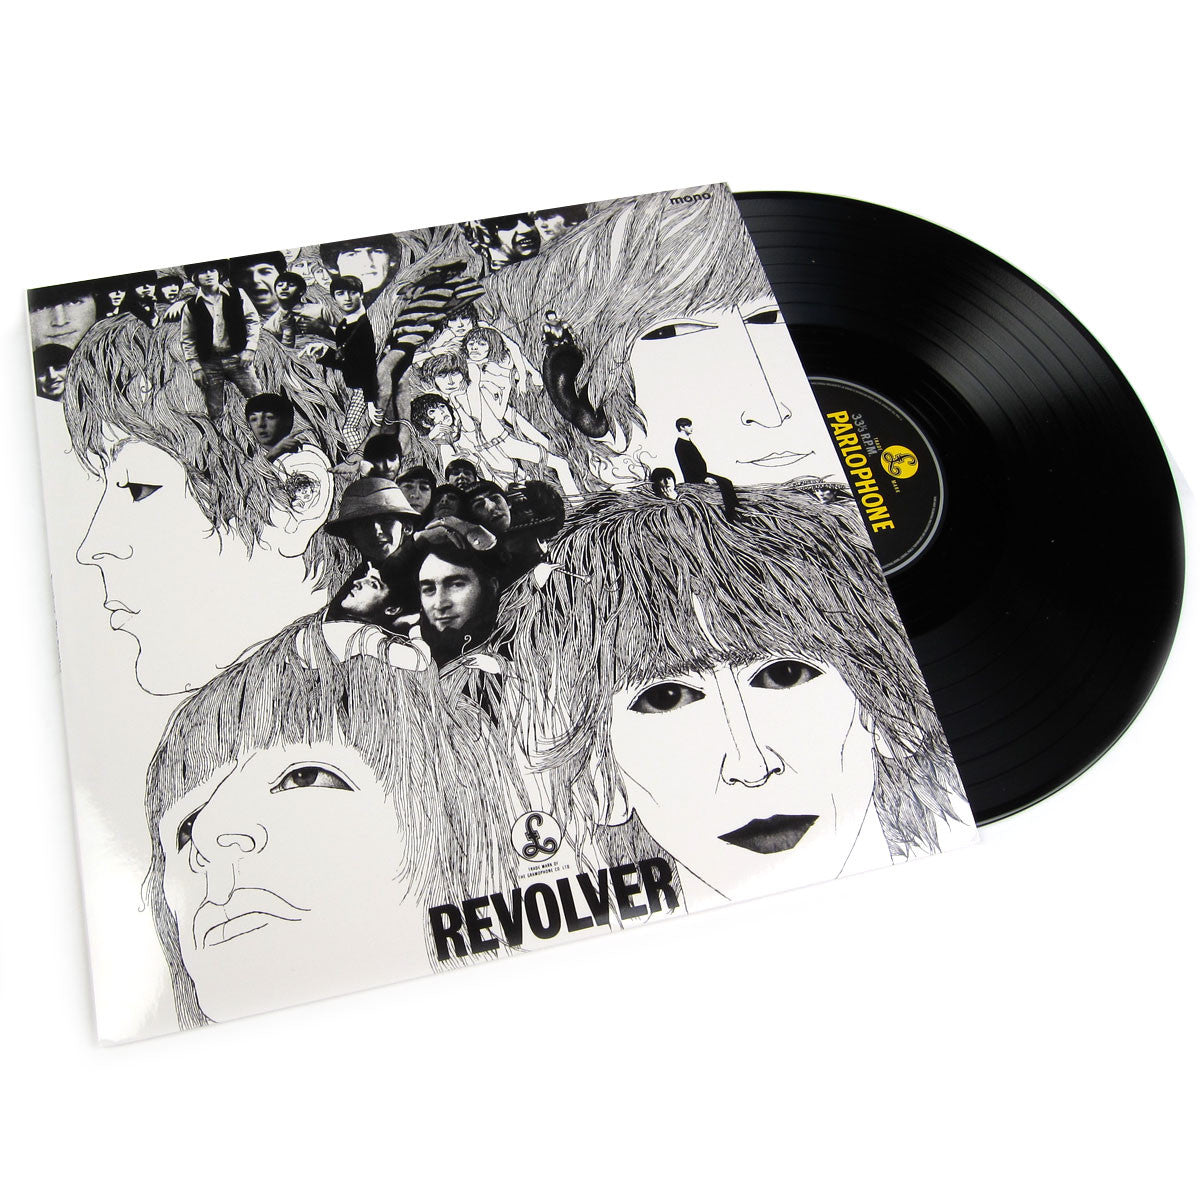 The Beatles: Revolver in Mono (180g) Vinyl LP